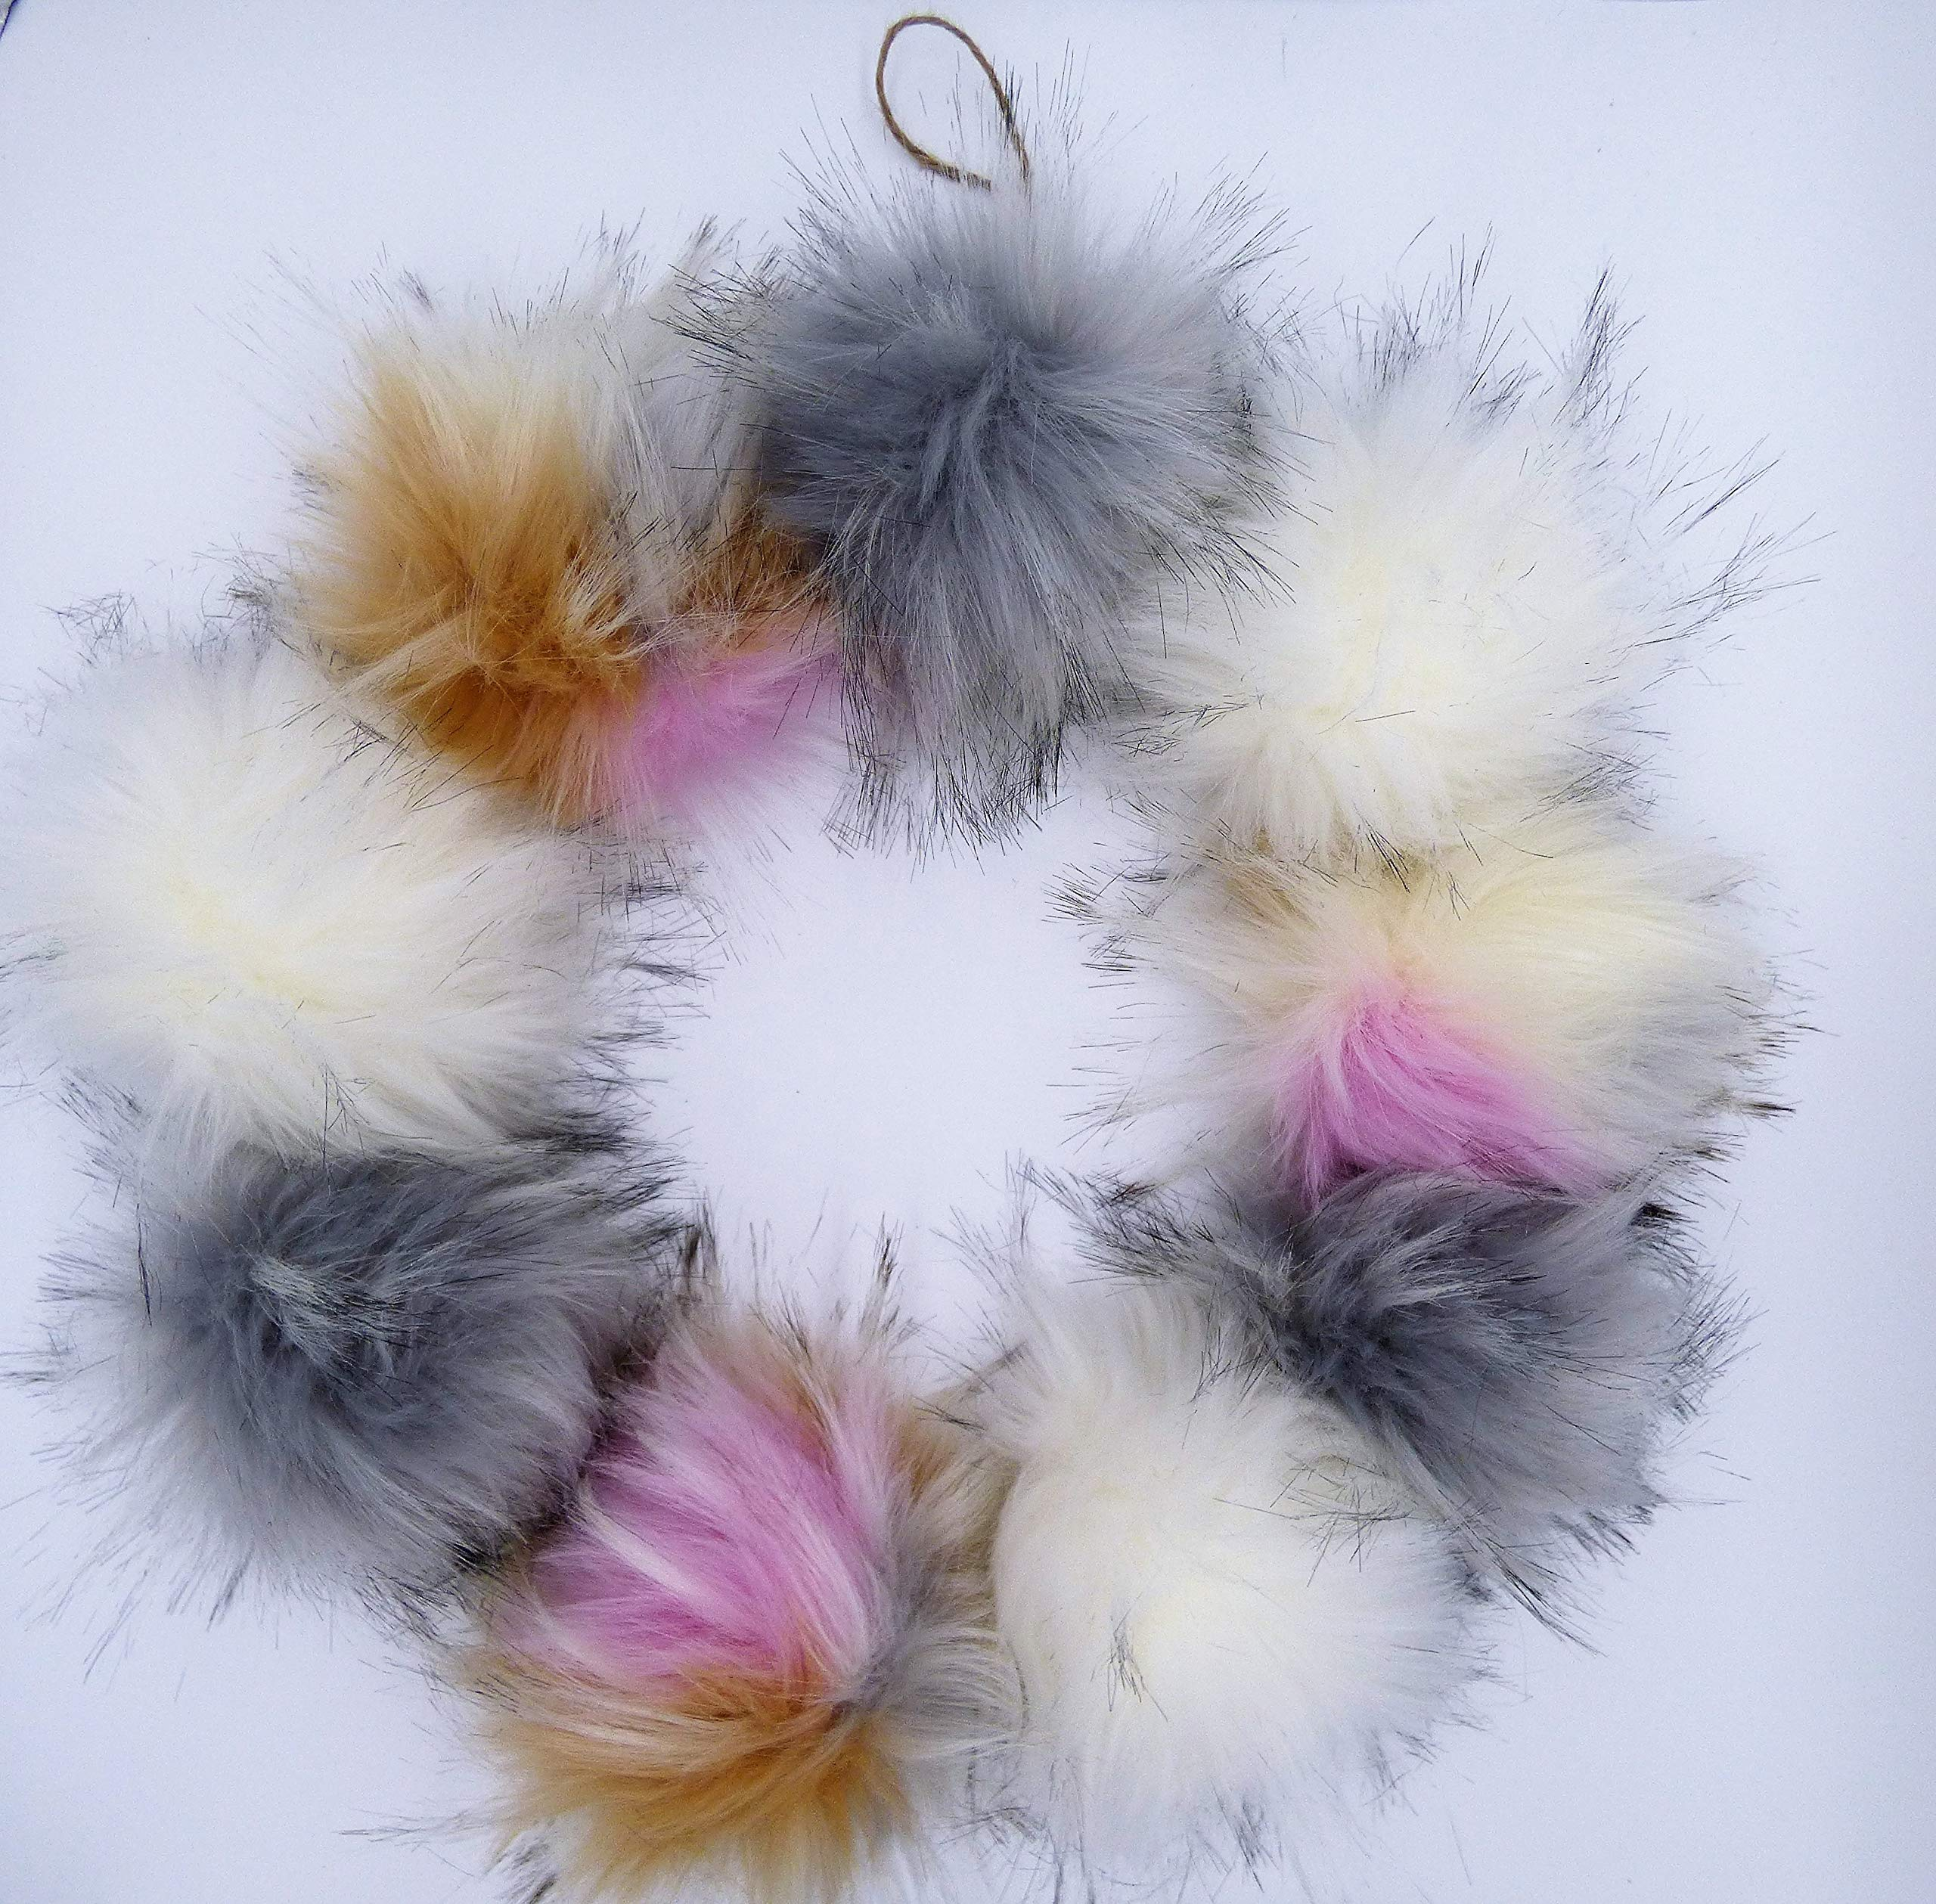 Faux Fur Pom Pom Balls | Extra Large {5-6 INCHES} Set of 3 Removable Pompoms with Snaps for Knitting Accessories | DIY Hats and Crafts | Pastel Assortment by Haven-Sent by Haven-Sent (Image #7)